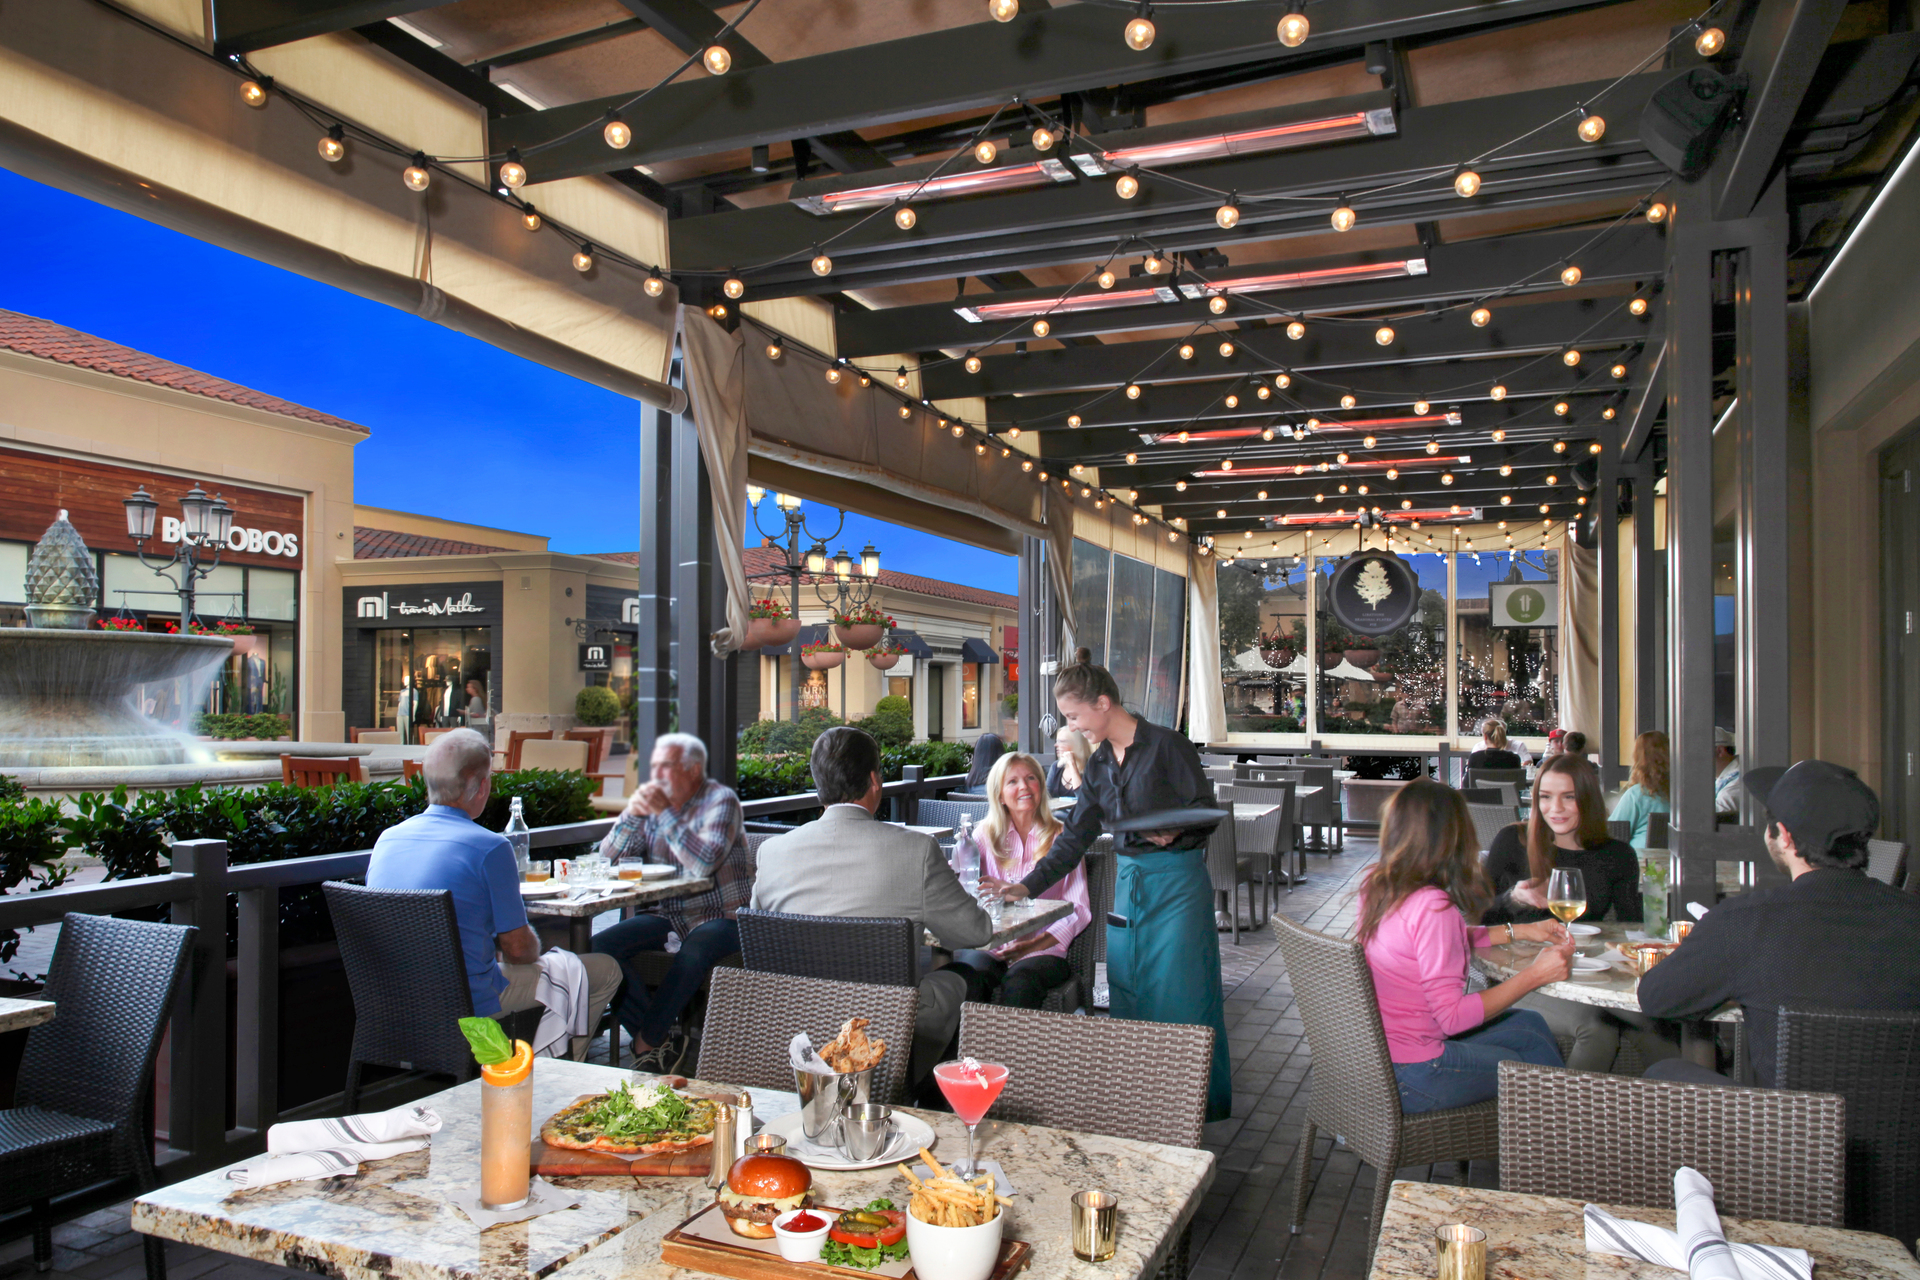 Great Maple Restaurant in Fashion Island, Newport Beach features ceiling-mounted W-Series heaters to make the most of their outdoor seating area, year-round.